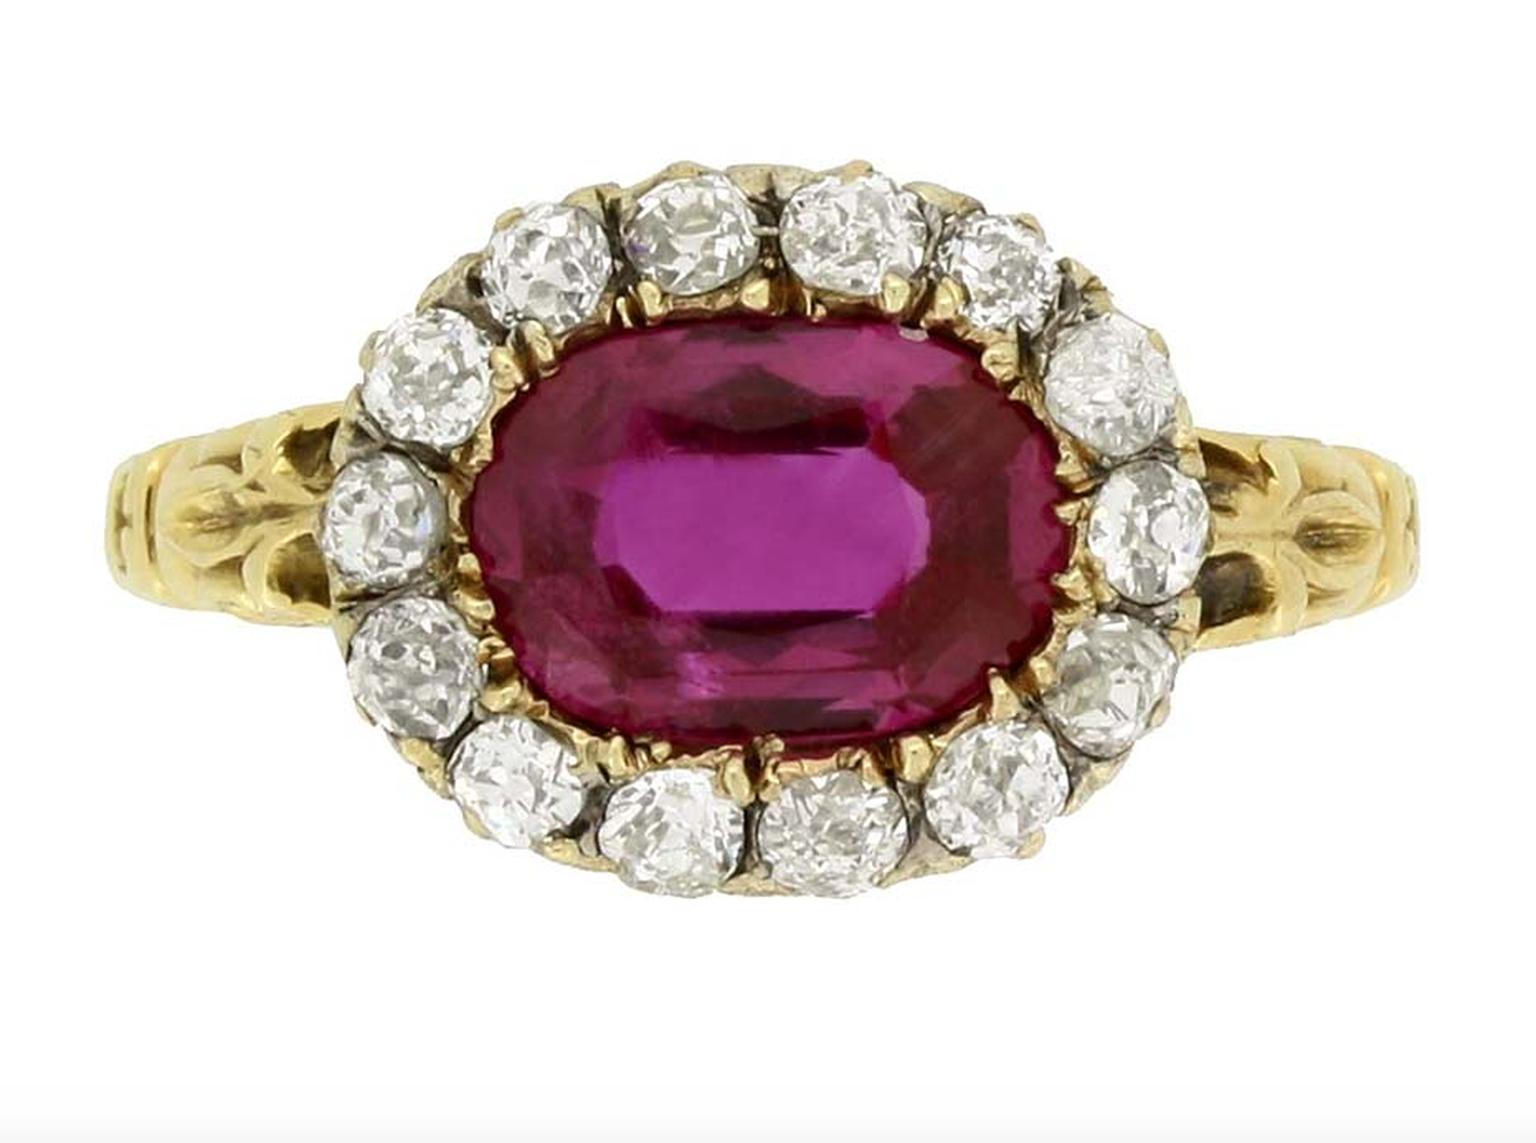 This early Victorian engagement ring, available from Berganza in London, features an oval, old-cut, natural, unenhanced Burmese ruby, encircled by a row of cushion-shape, old-cut diamonds. It dates from around 1850.